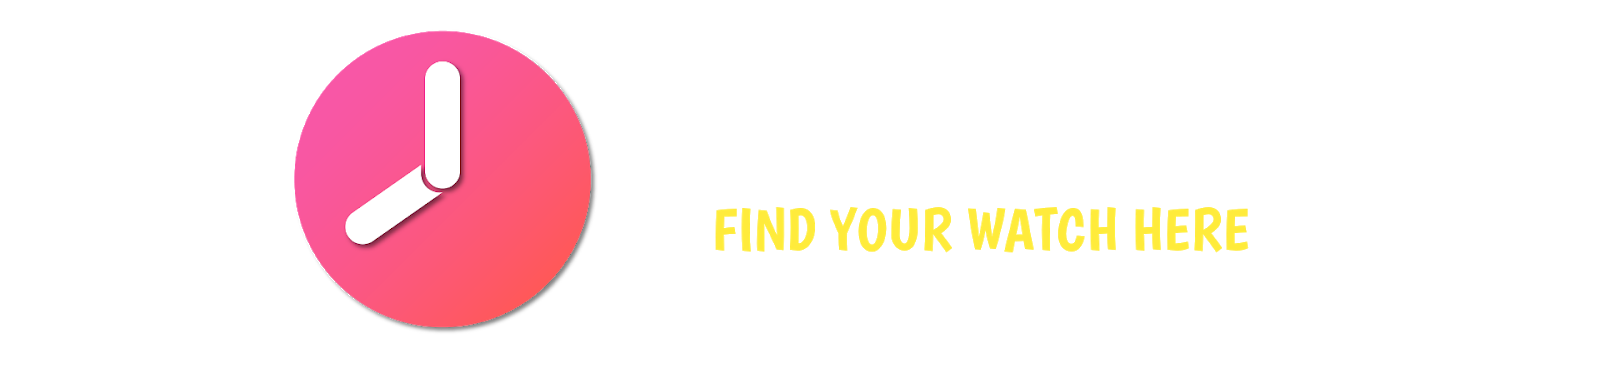 Find your watch here